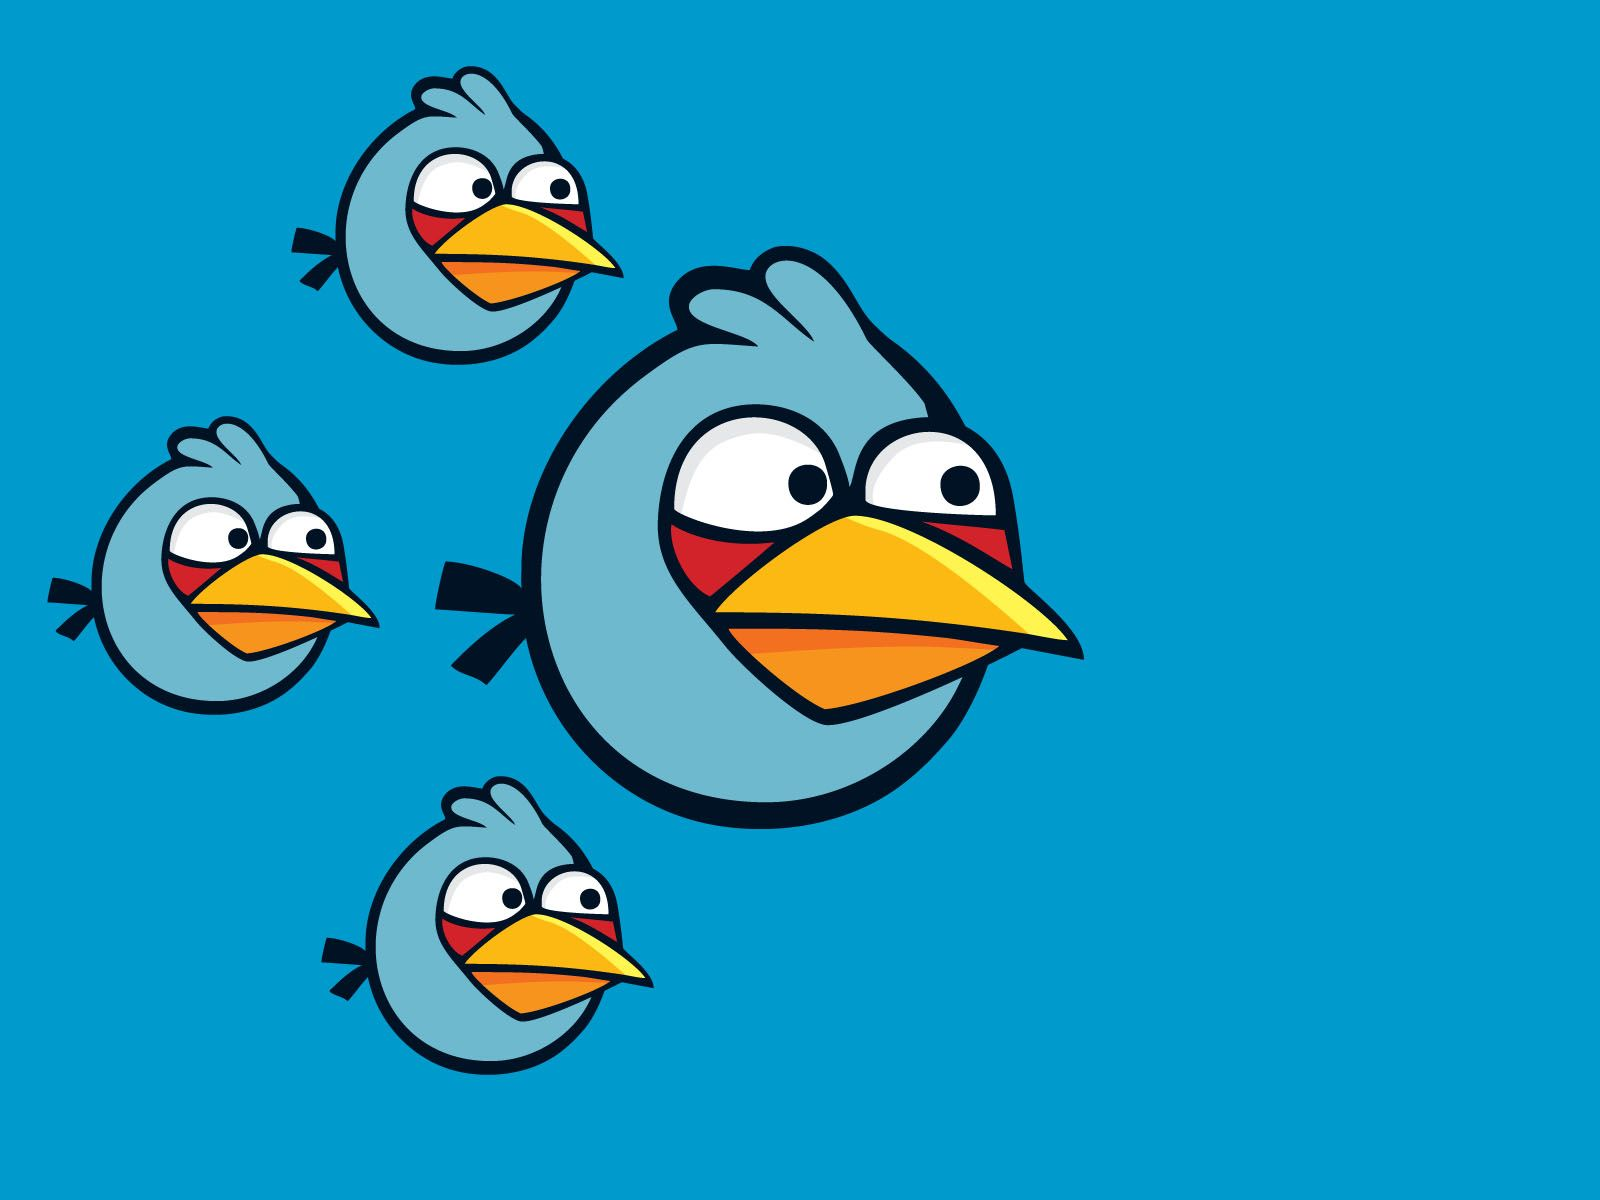 Angry Animals Google Search: Blue Angry Birds - Google Search